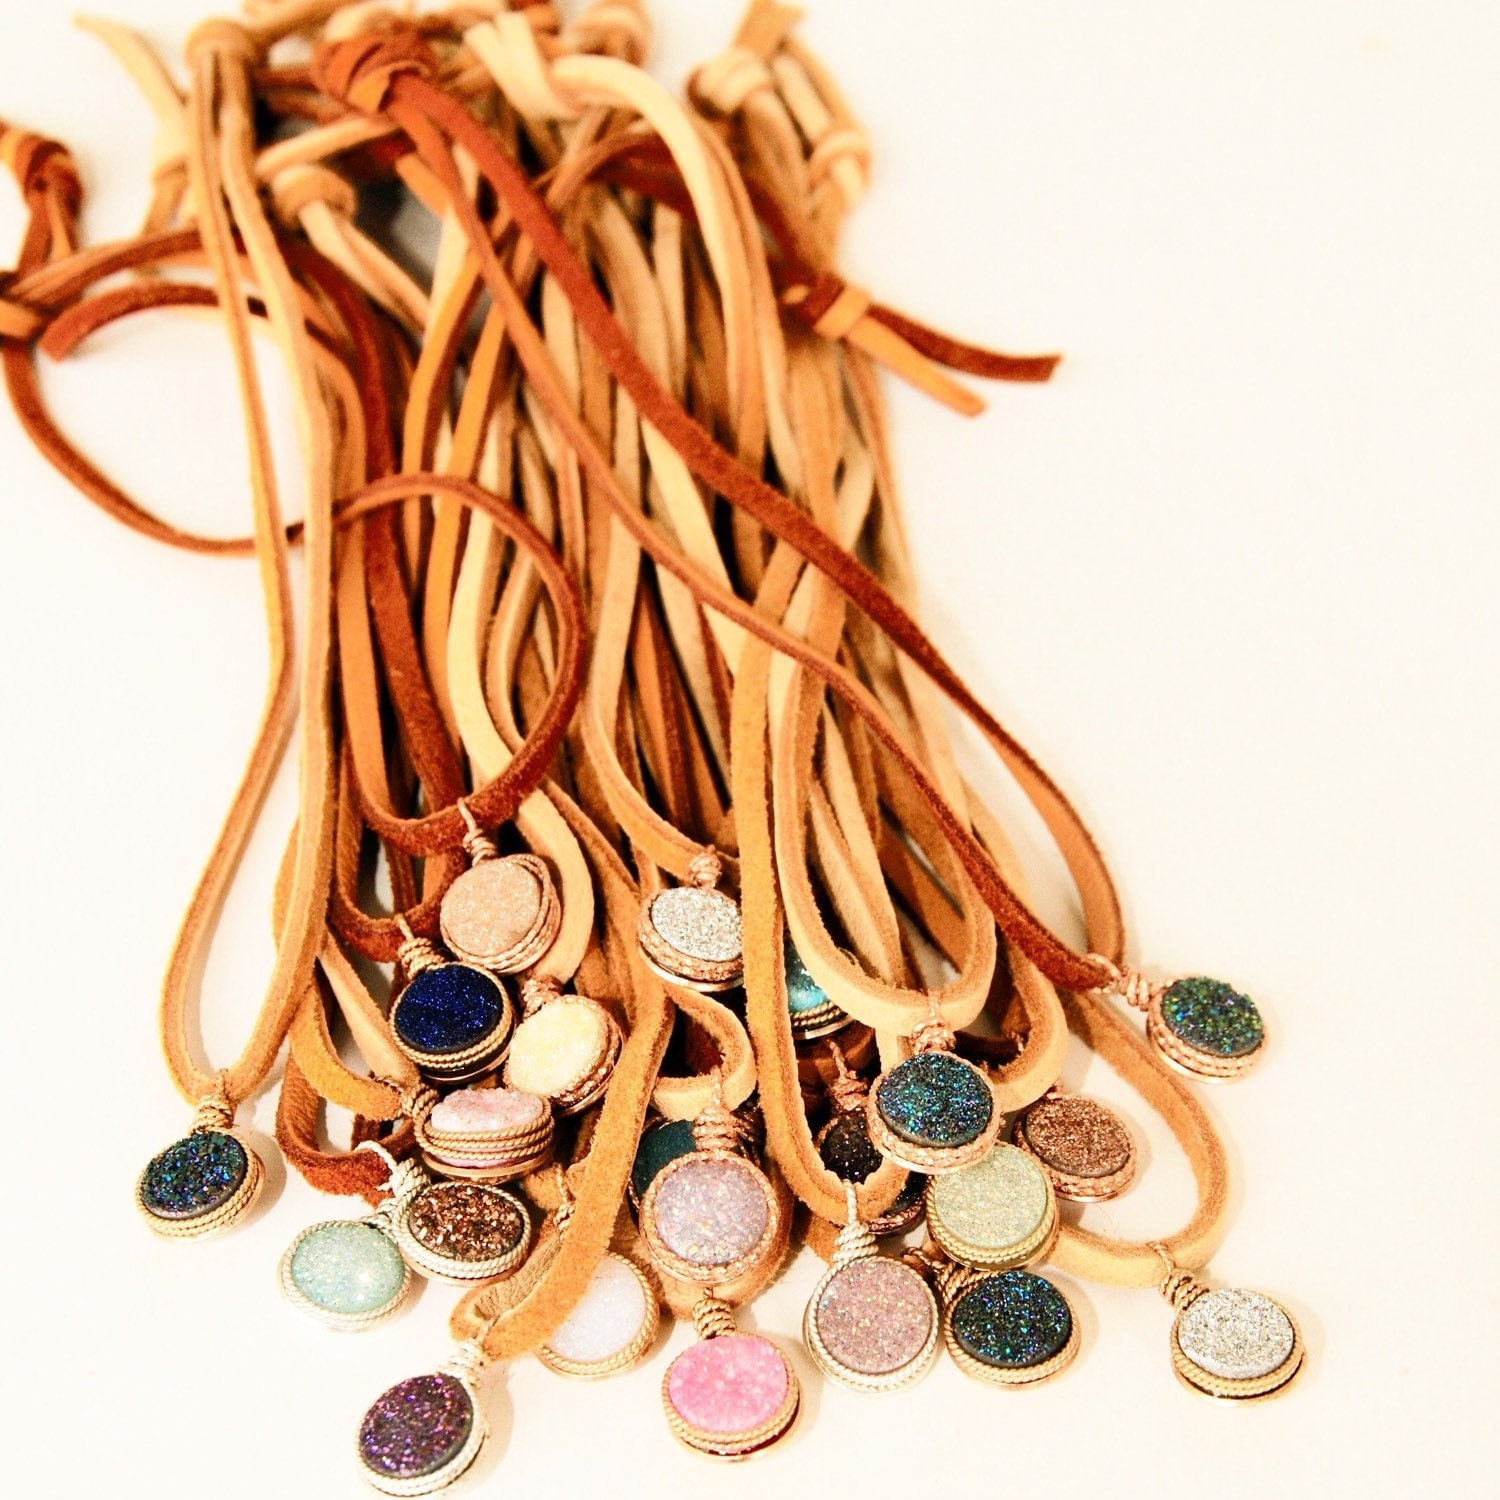 Druze Charm Necklaces on Leather handcrafted by Bare and ME on Etsy/ Colorful Druzy Leather Necklaces/ Bohemian Druzy and Leather Jewelry